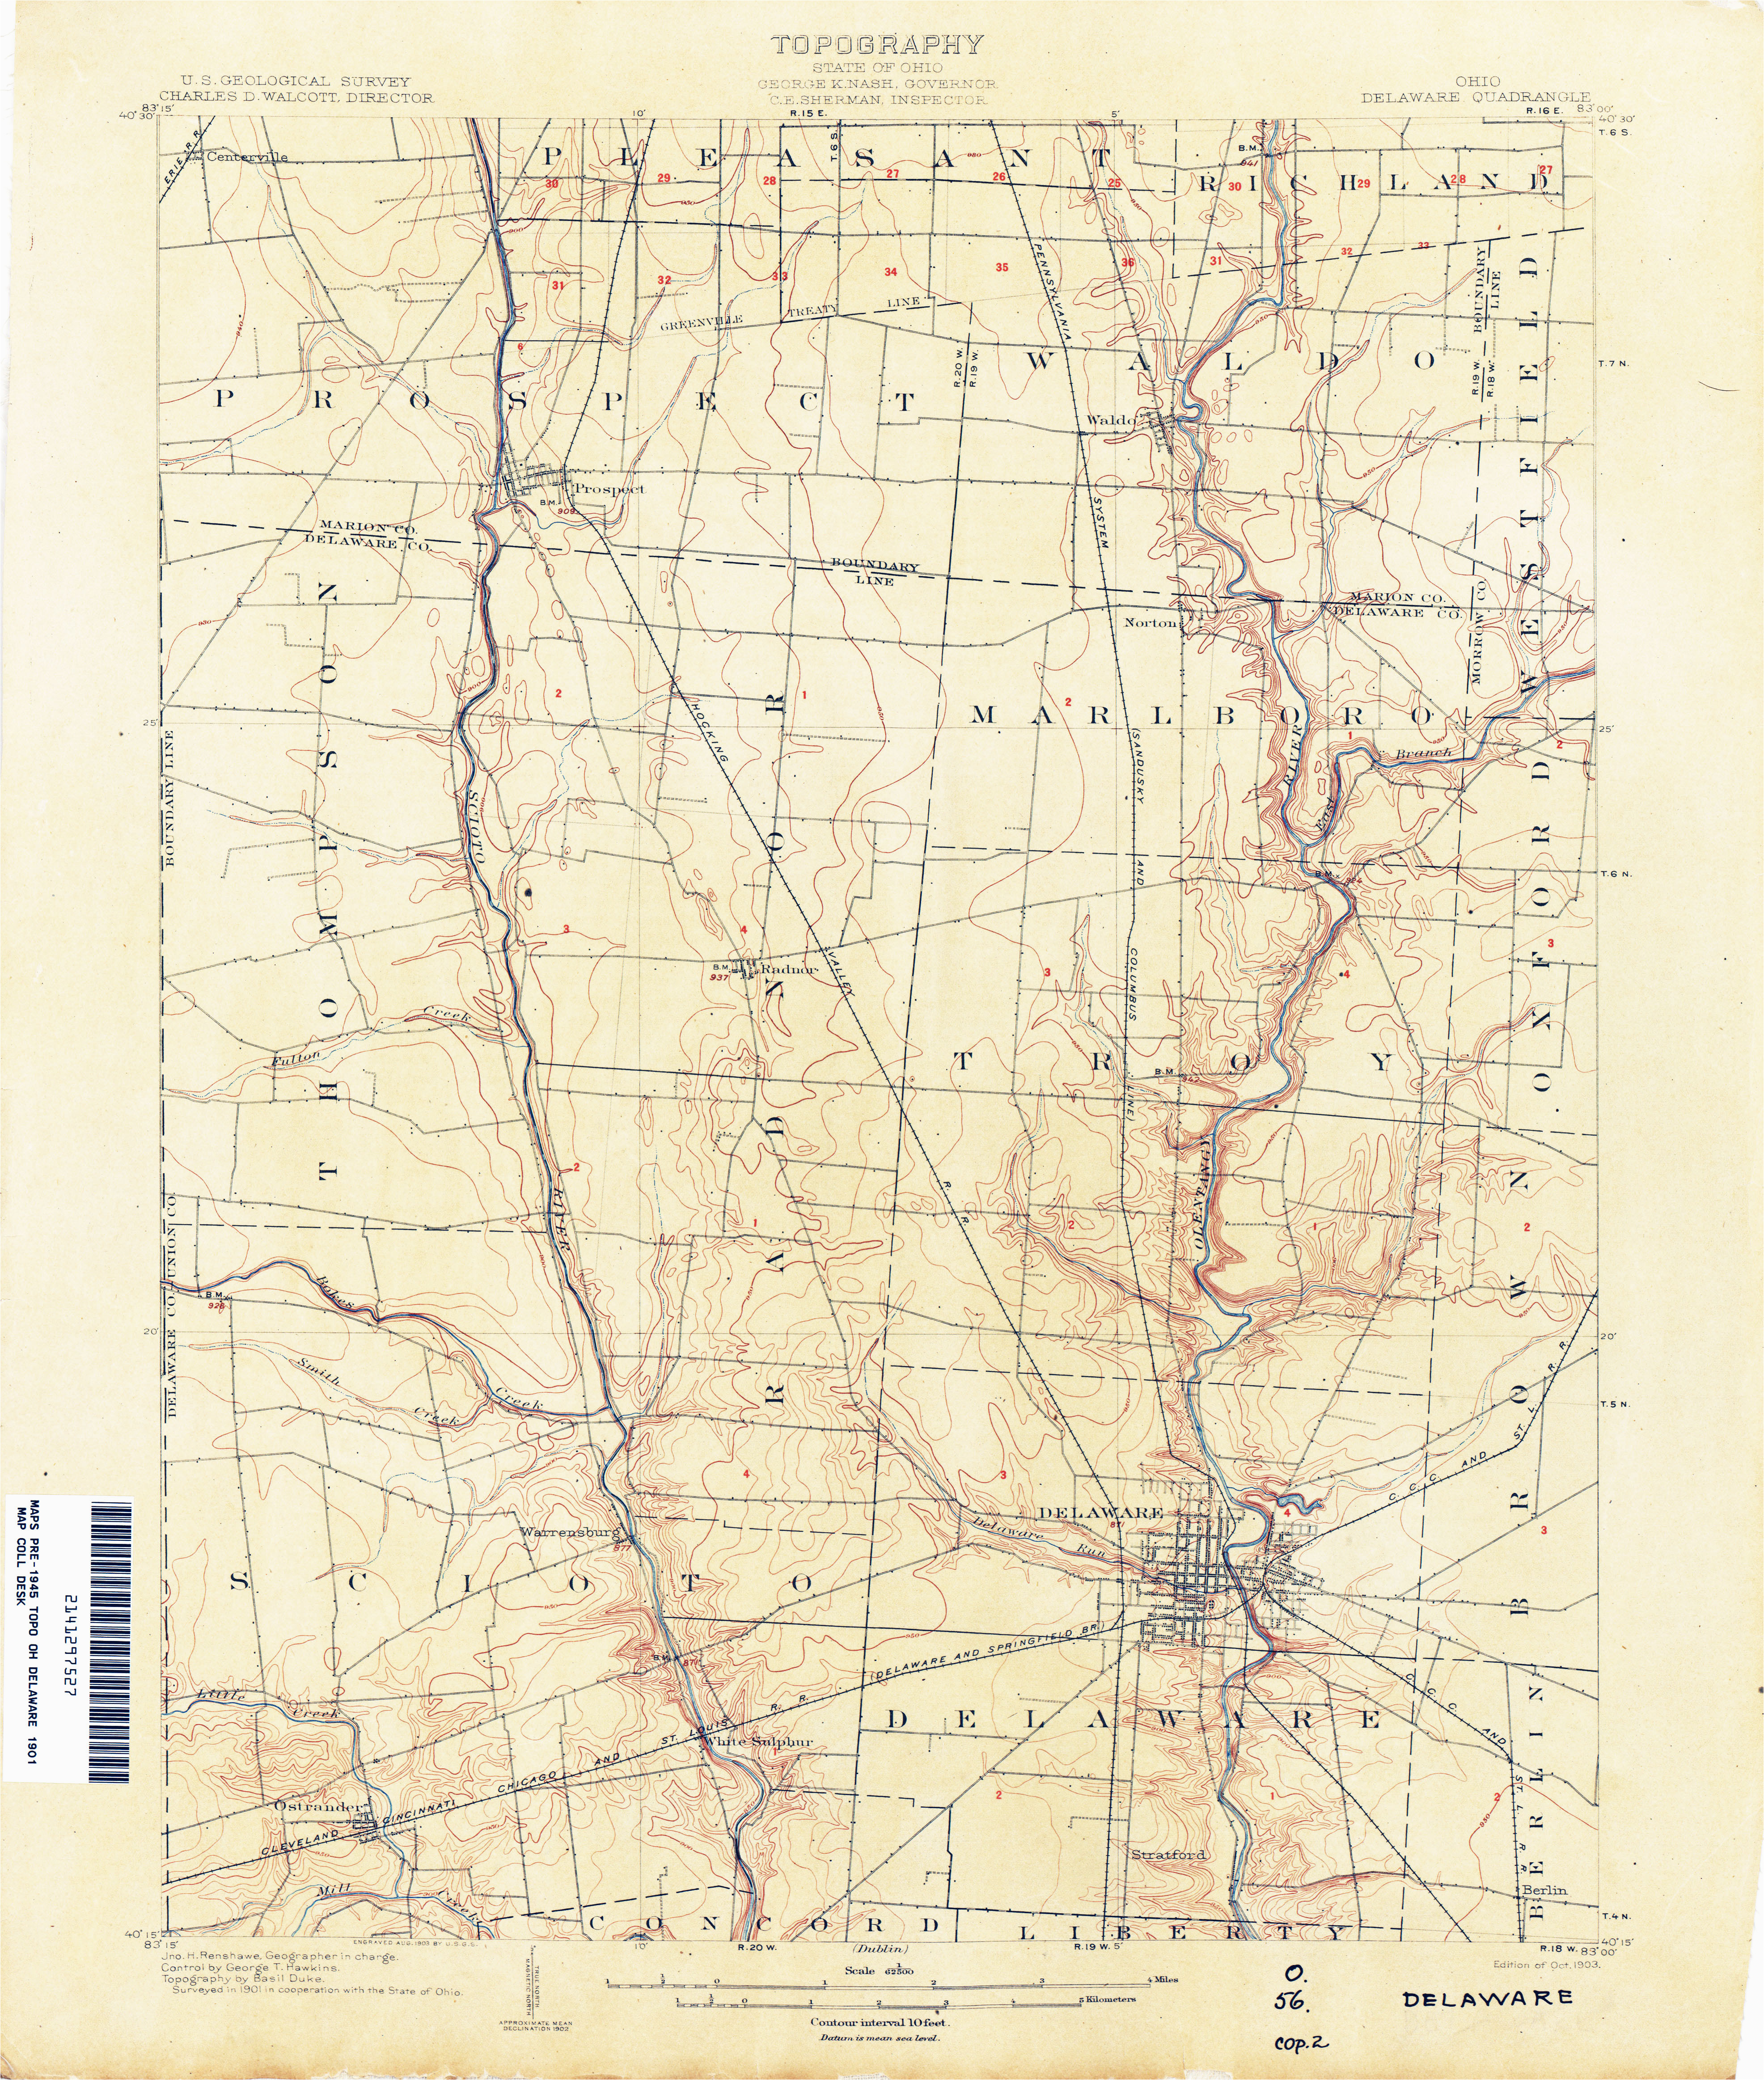 Delaware County Ohio Map Ohio Historical topographic Maps Perry Castaa Eda Map Collection